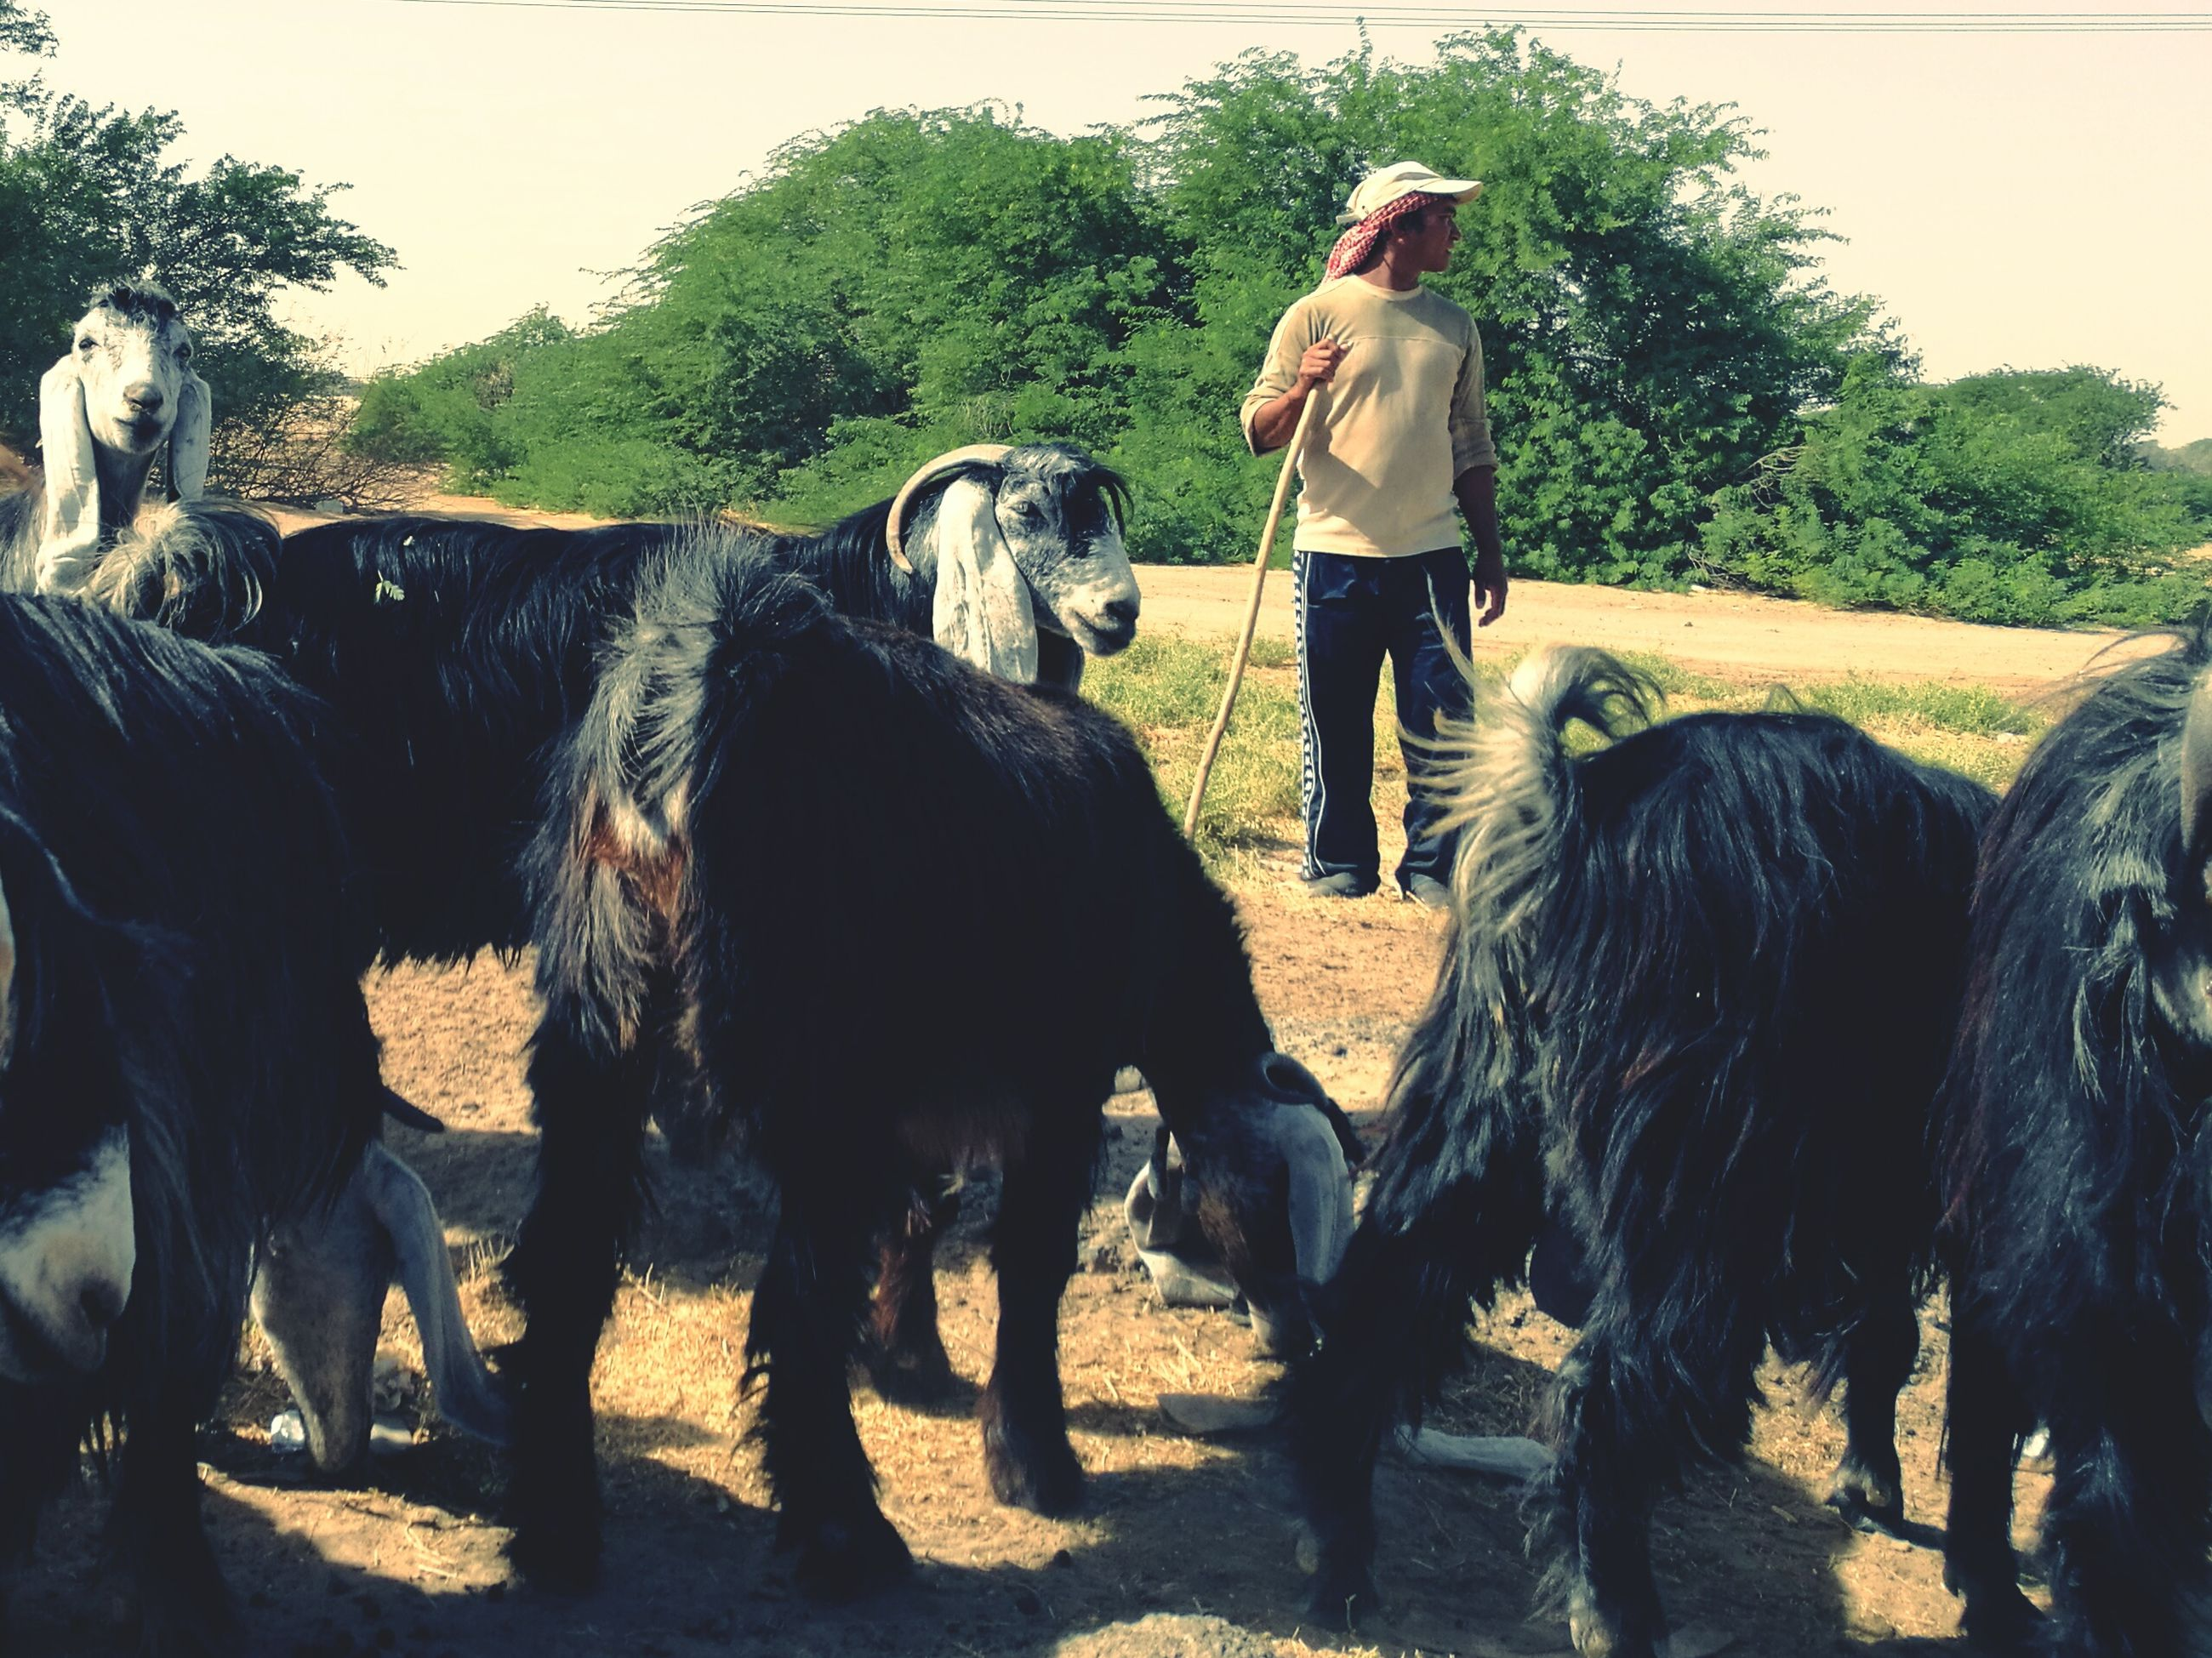 domestic animals, mammal, full length, tree, leisure activity, rear view, one animal, standing, lifestyles, casual clothing, livestock, horse, working animal, walking, field, person, outdoors, day, rural scene, young adult, casual